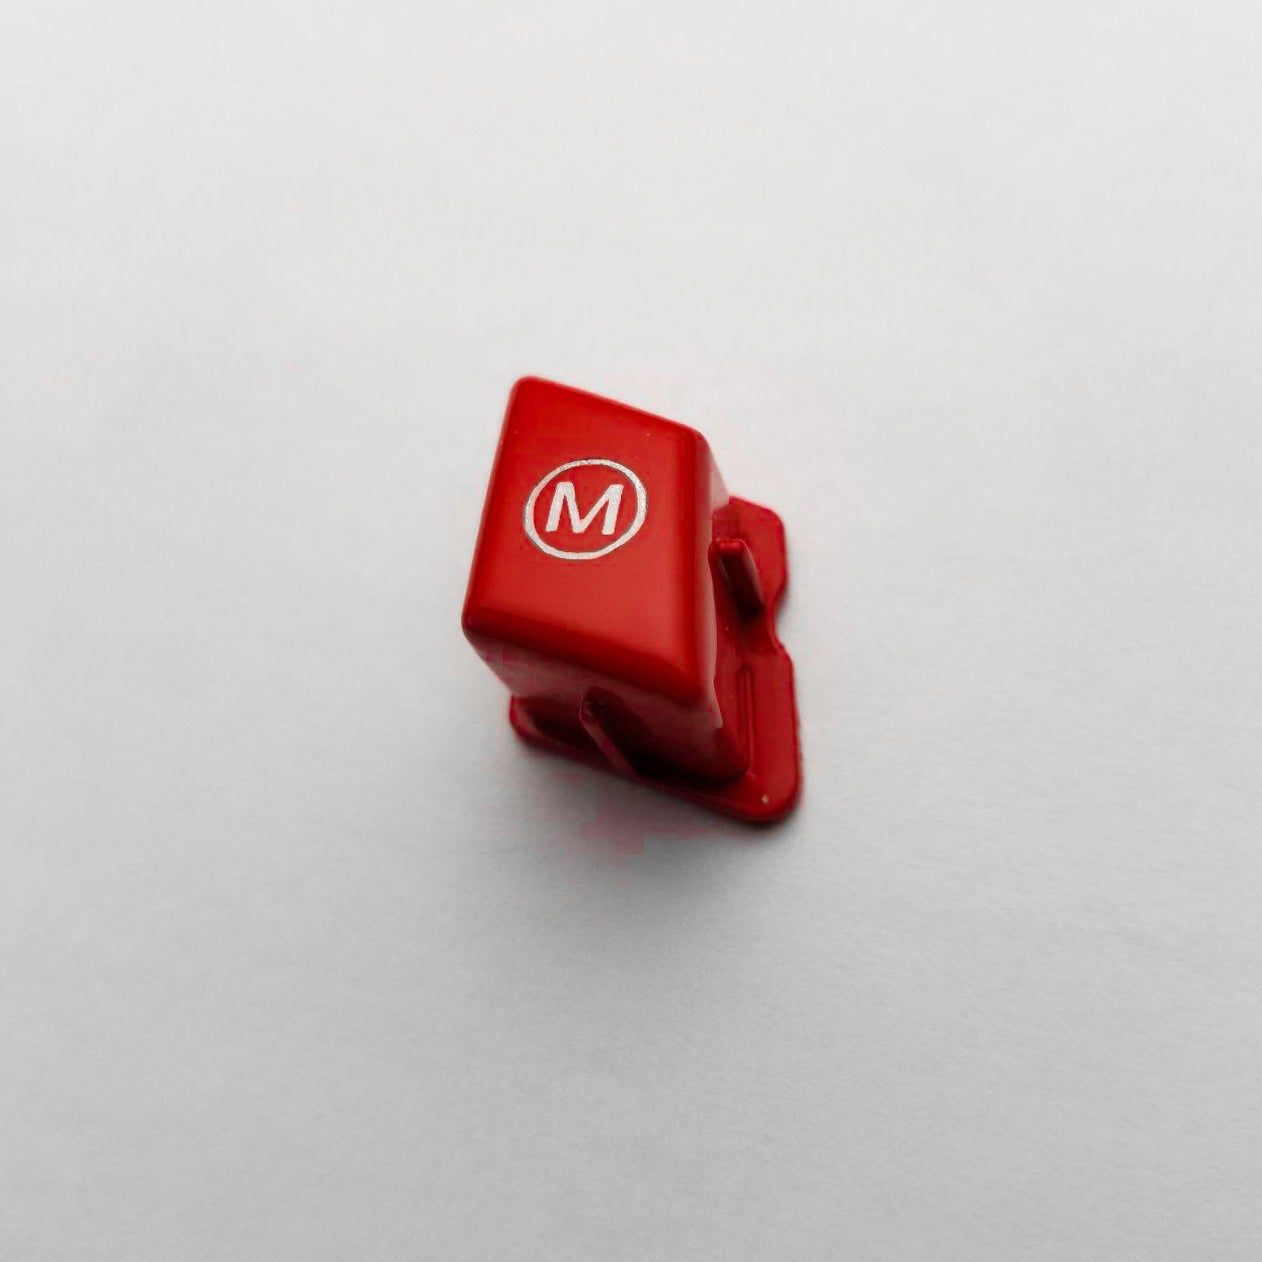 Image of Gloss Red M Steering Wheel Button